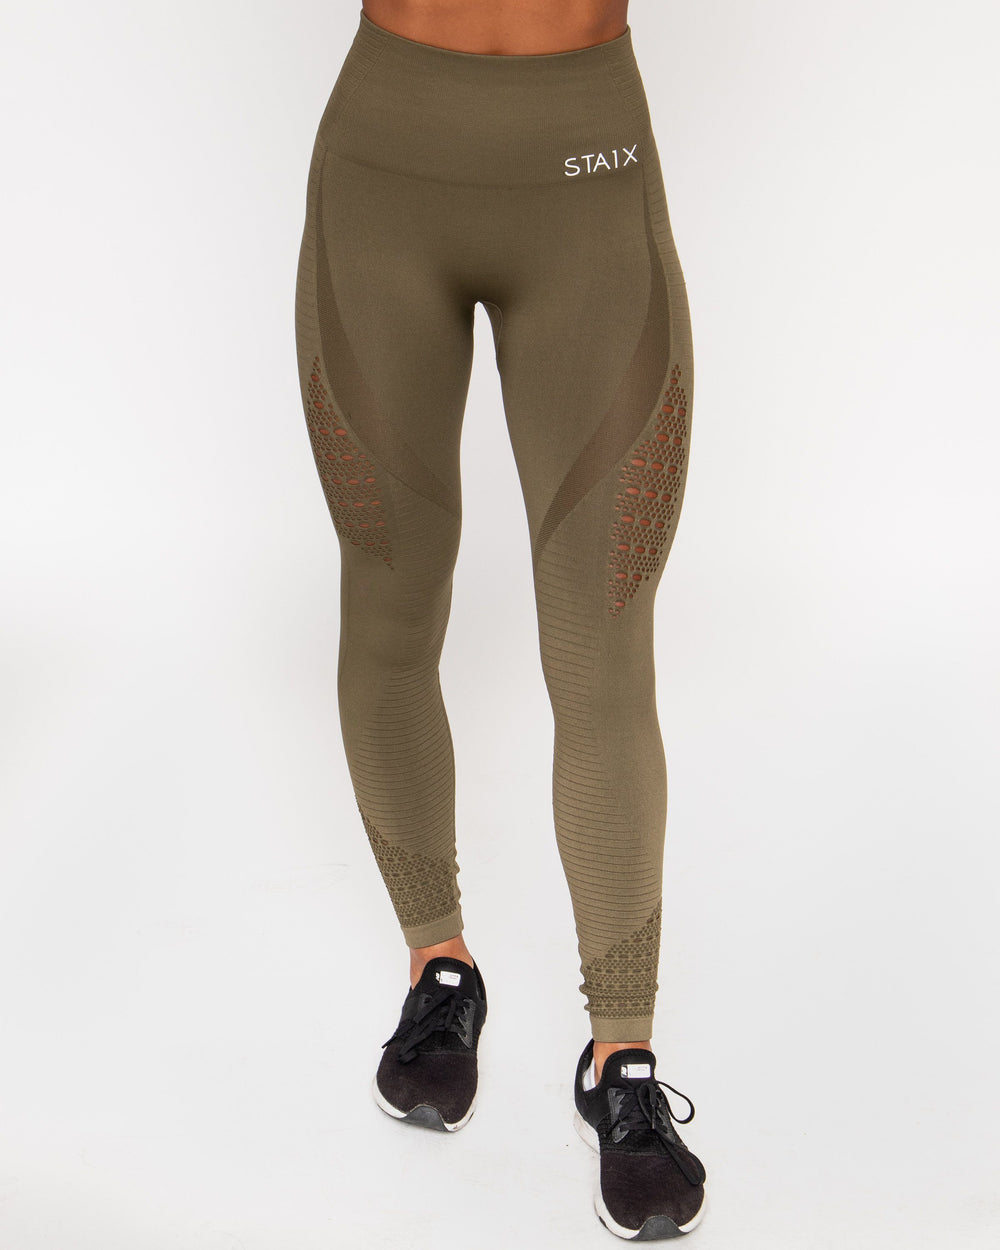 Hyper Leggings - Olive Green STAIX S